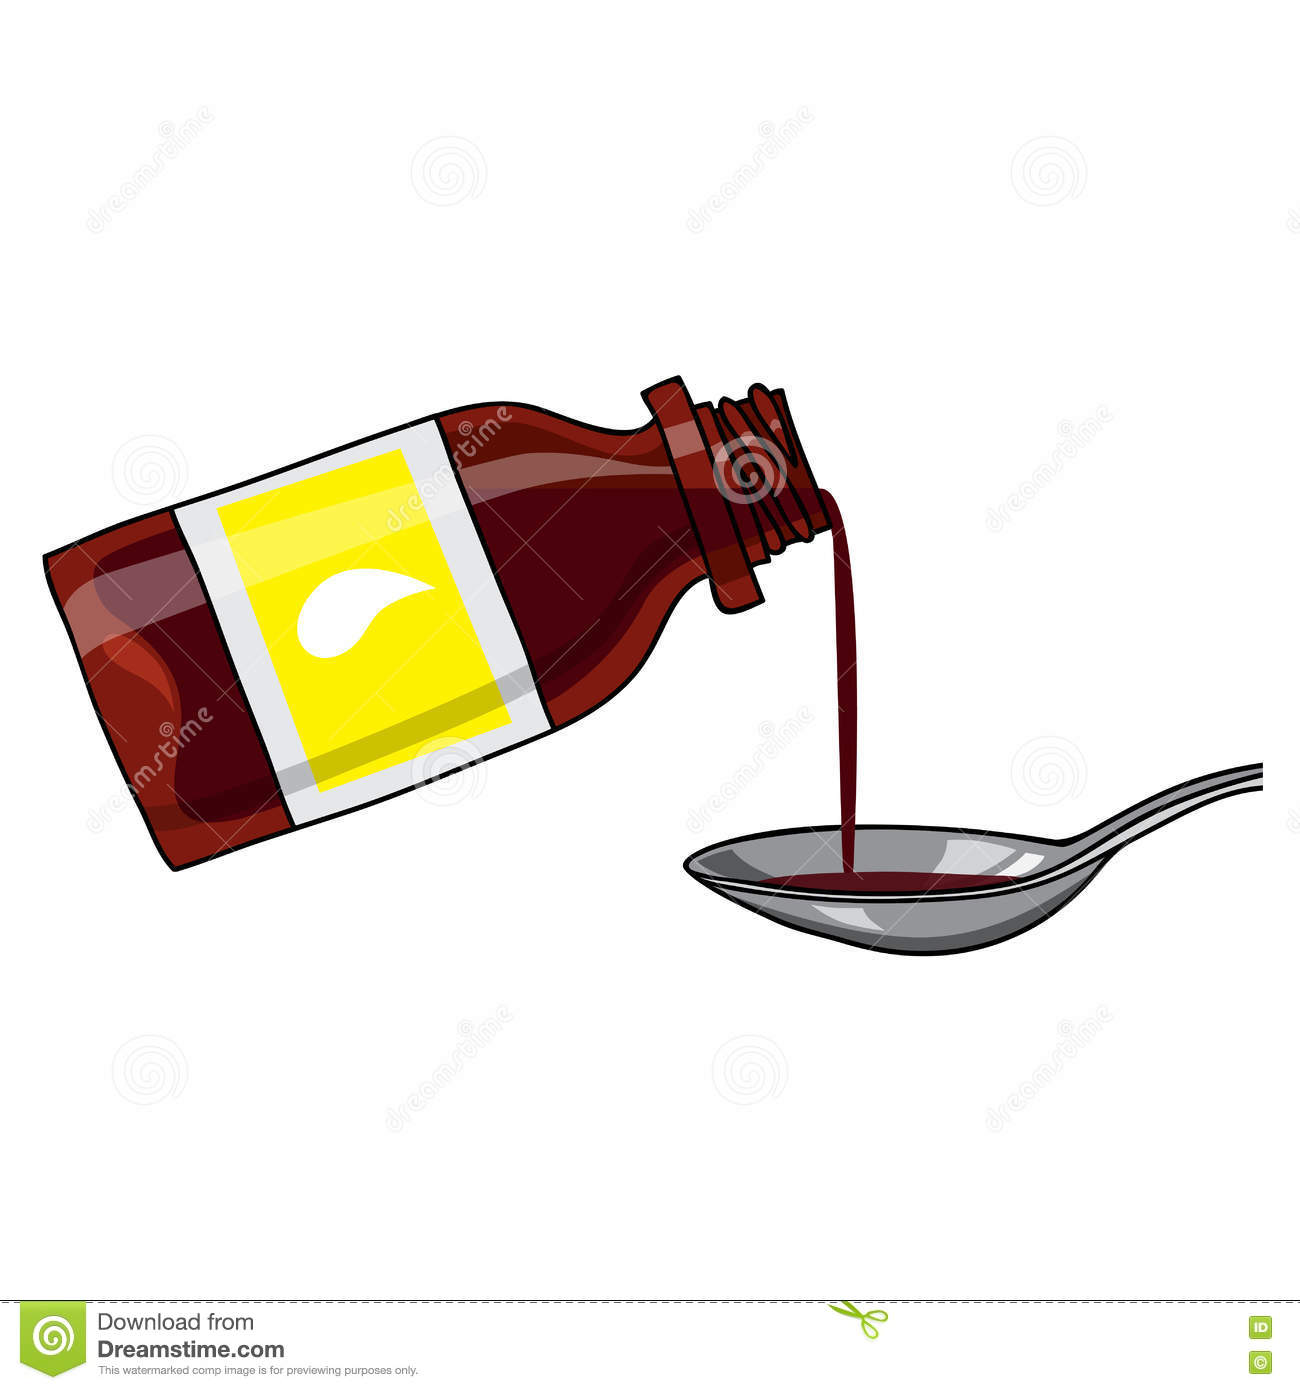 clip art cough syrup